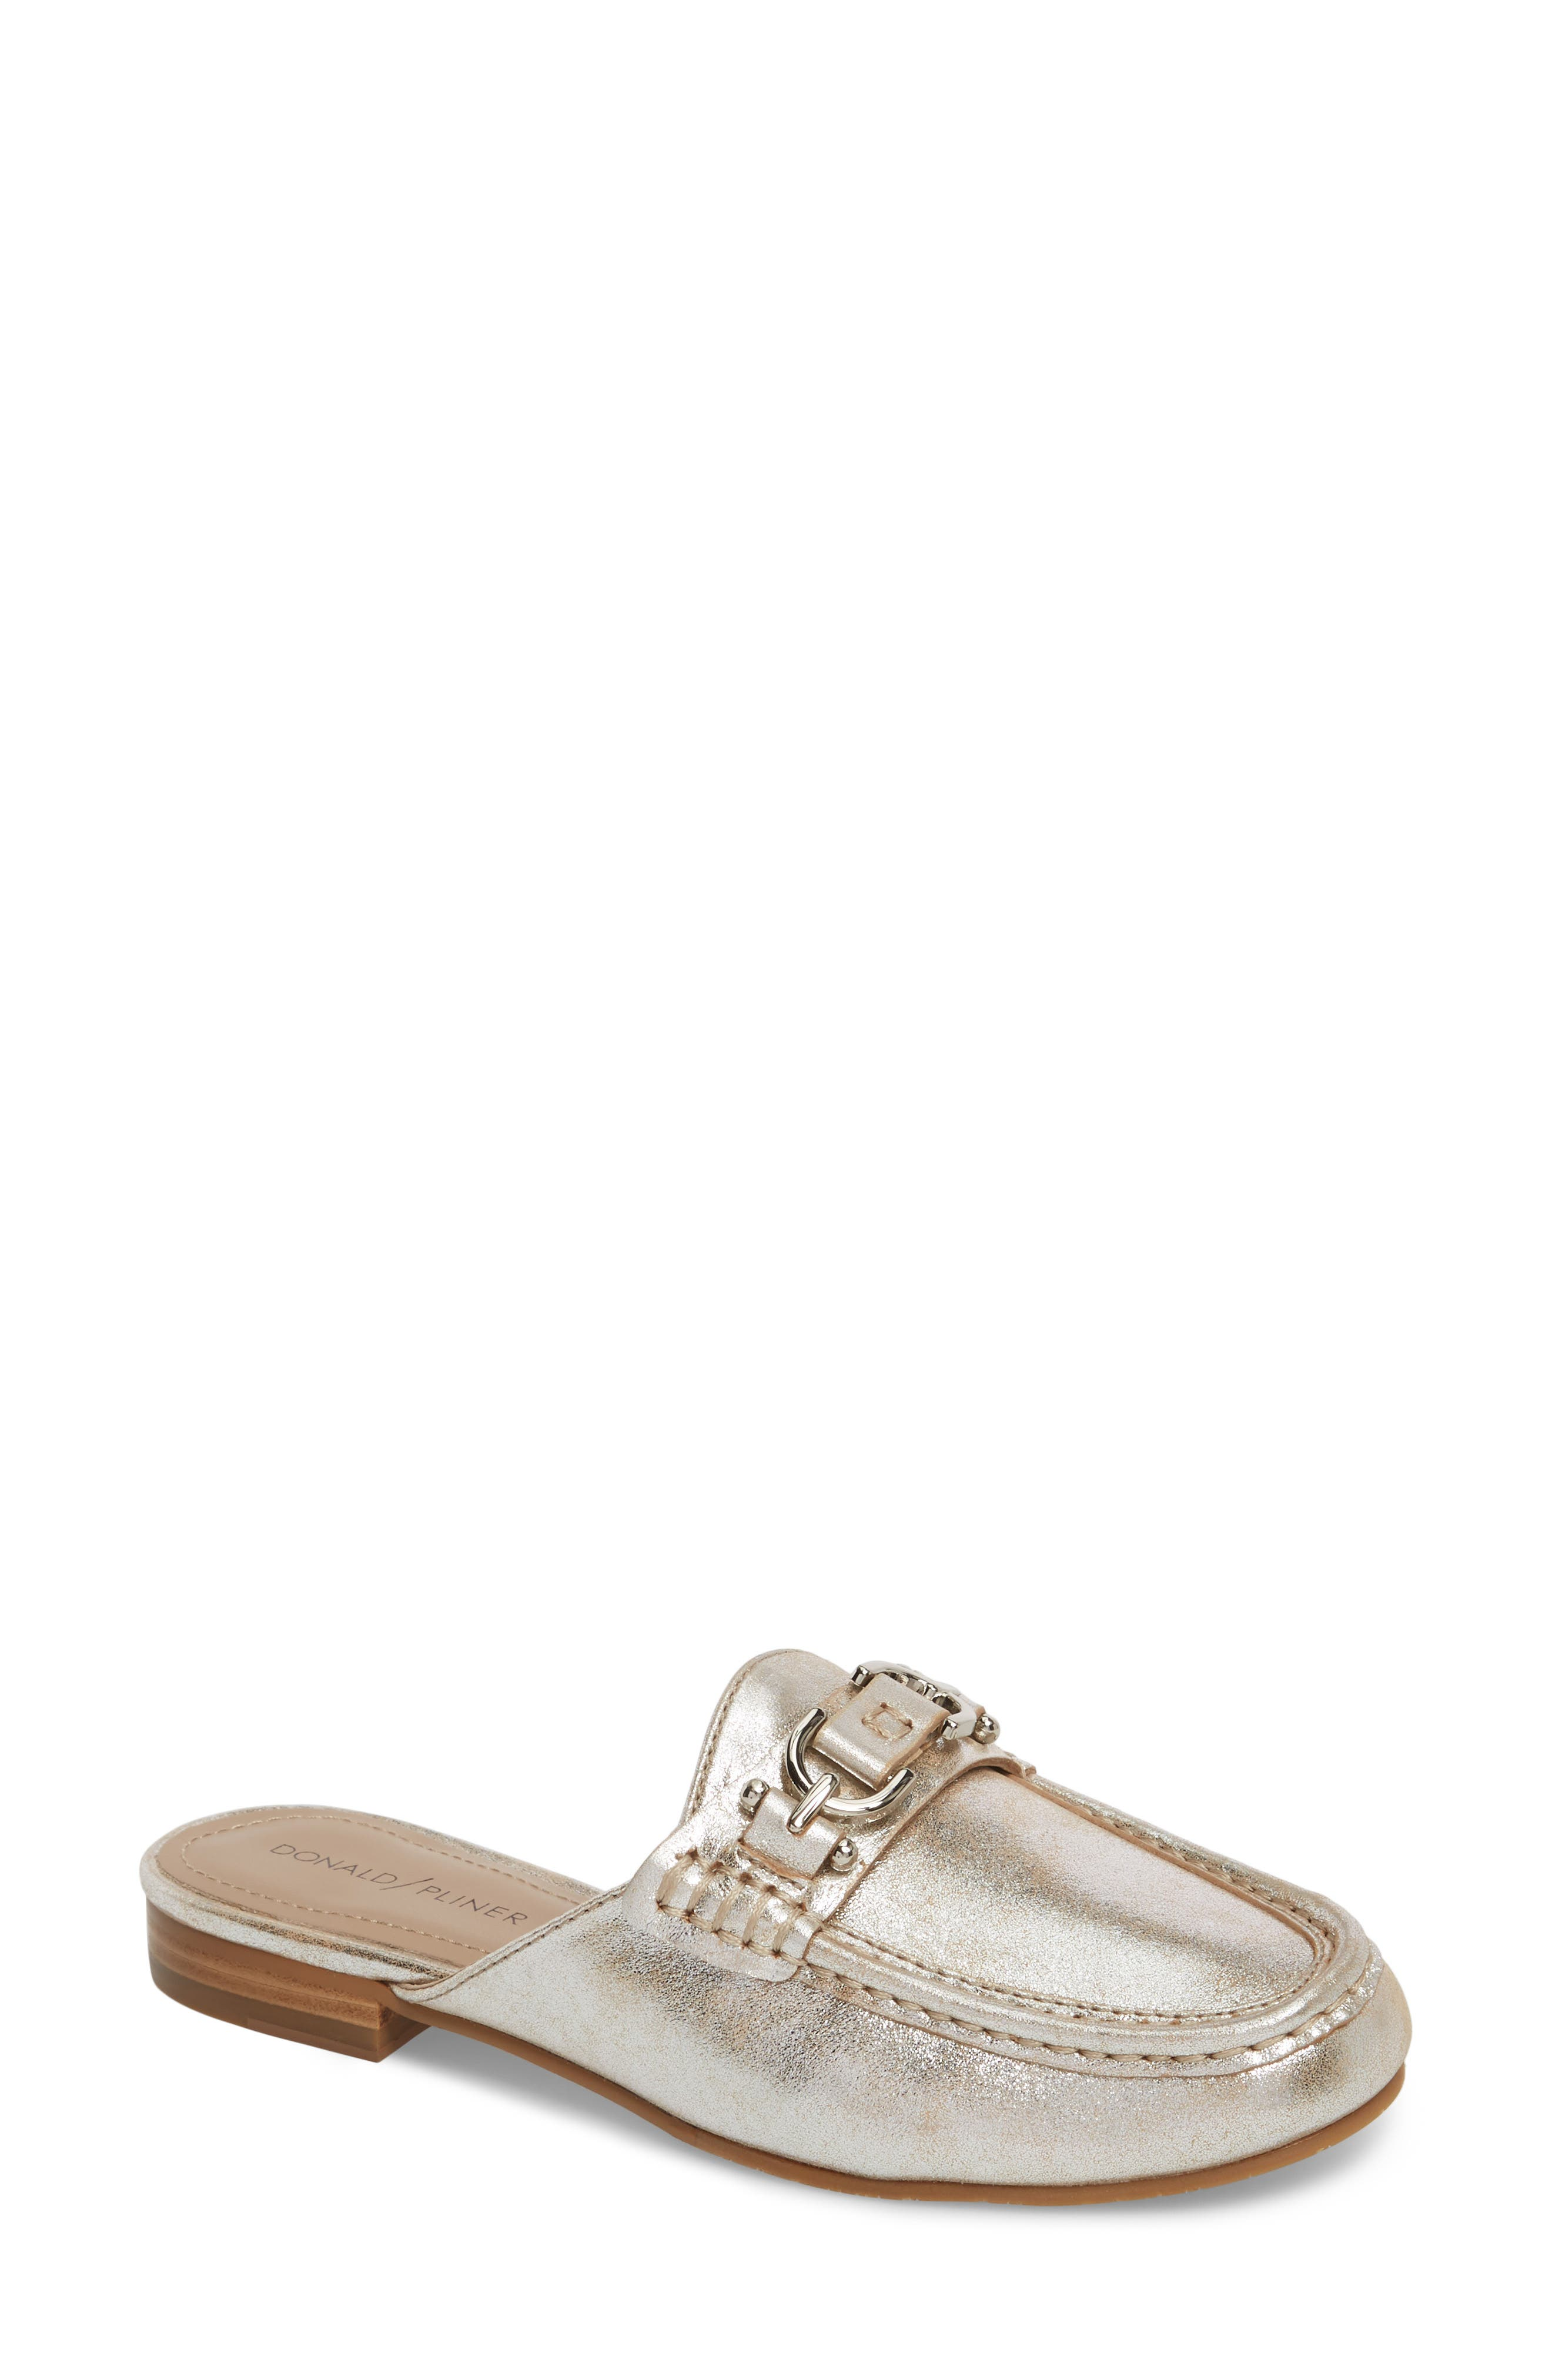 Sylvi Loafer Mule,                             Main thumbnail 1, color,                             Silver Leather